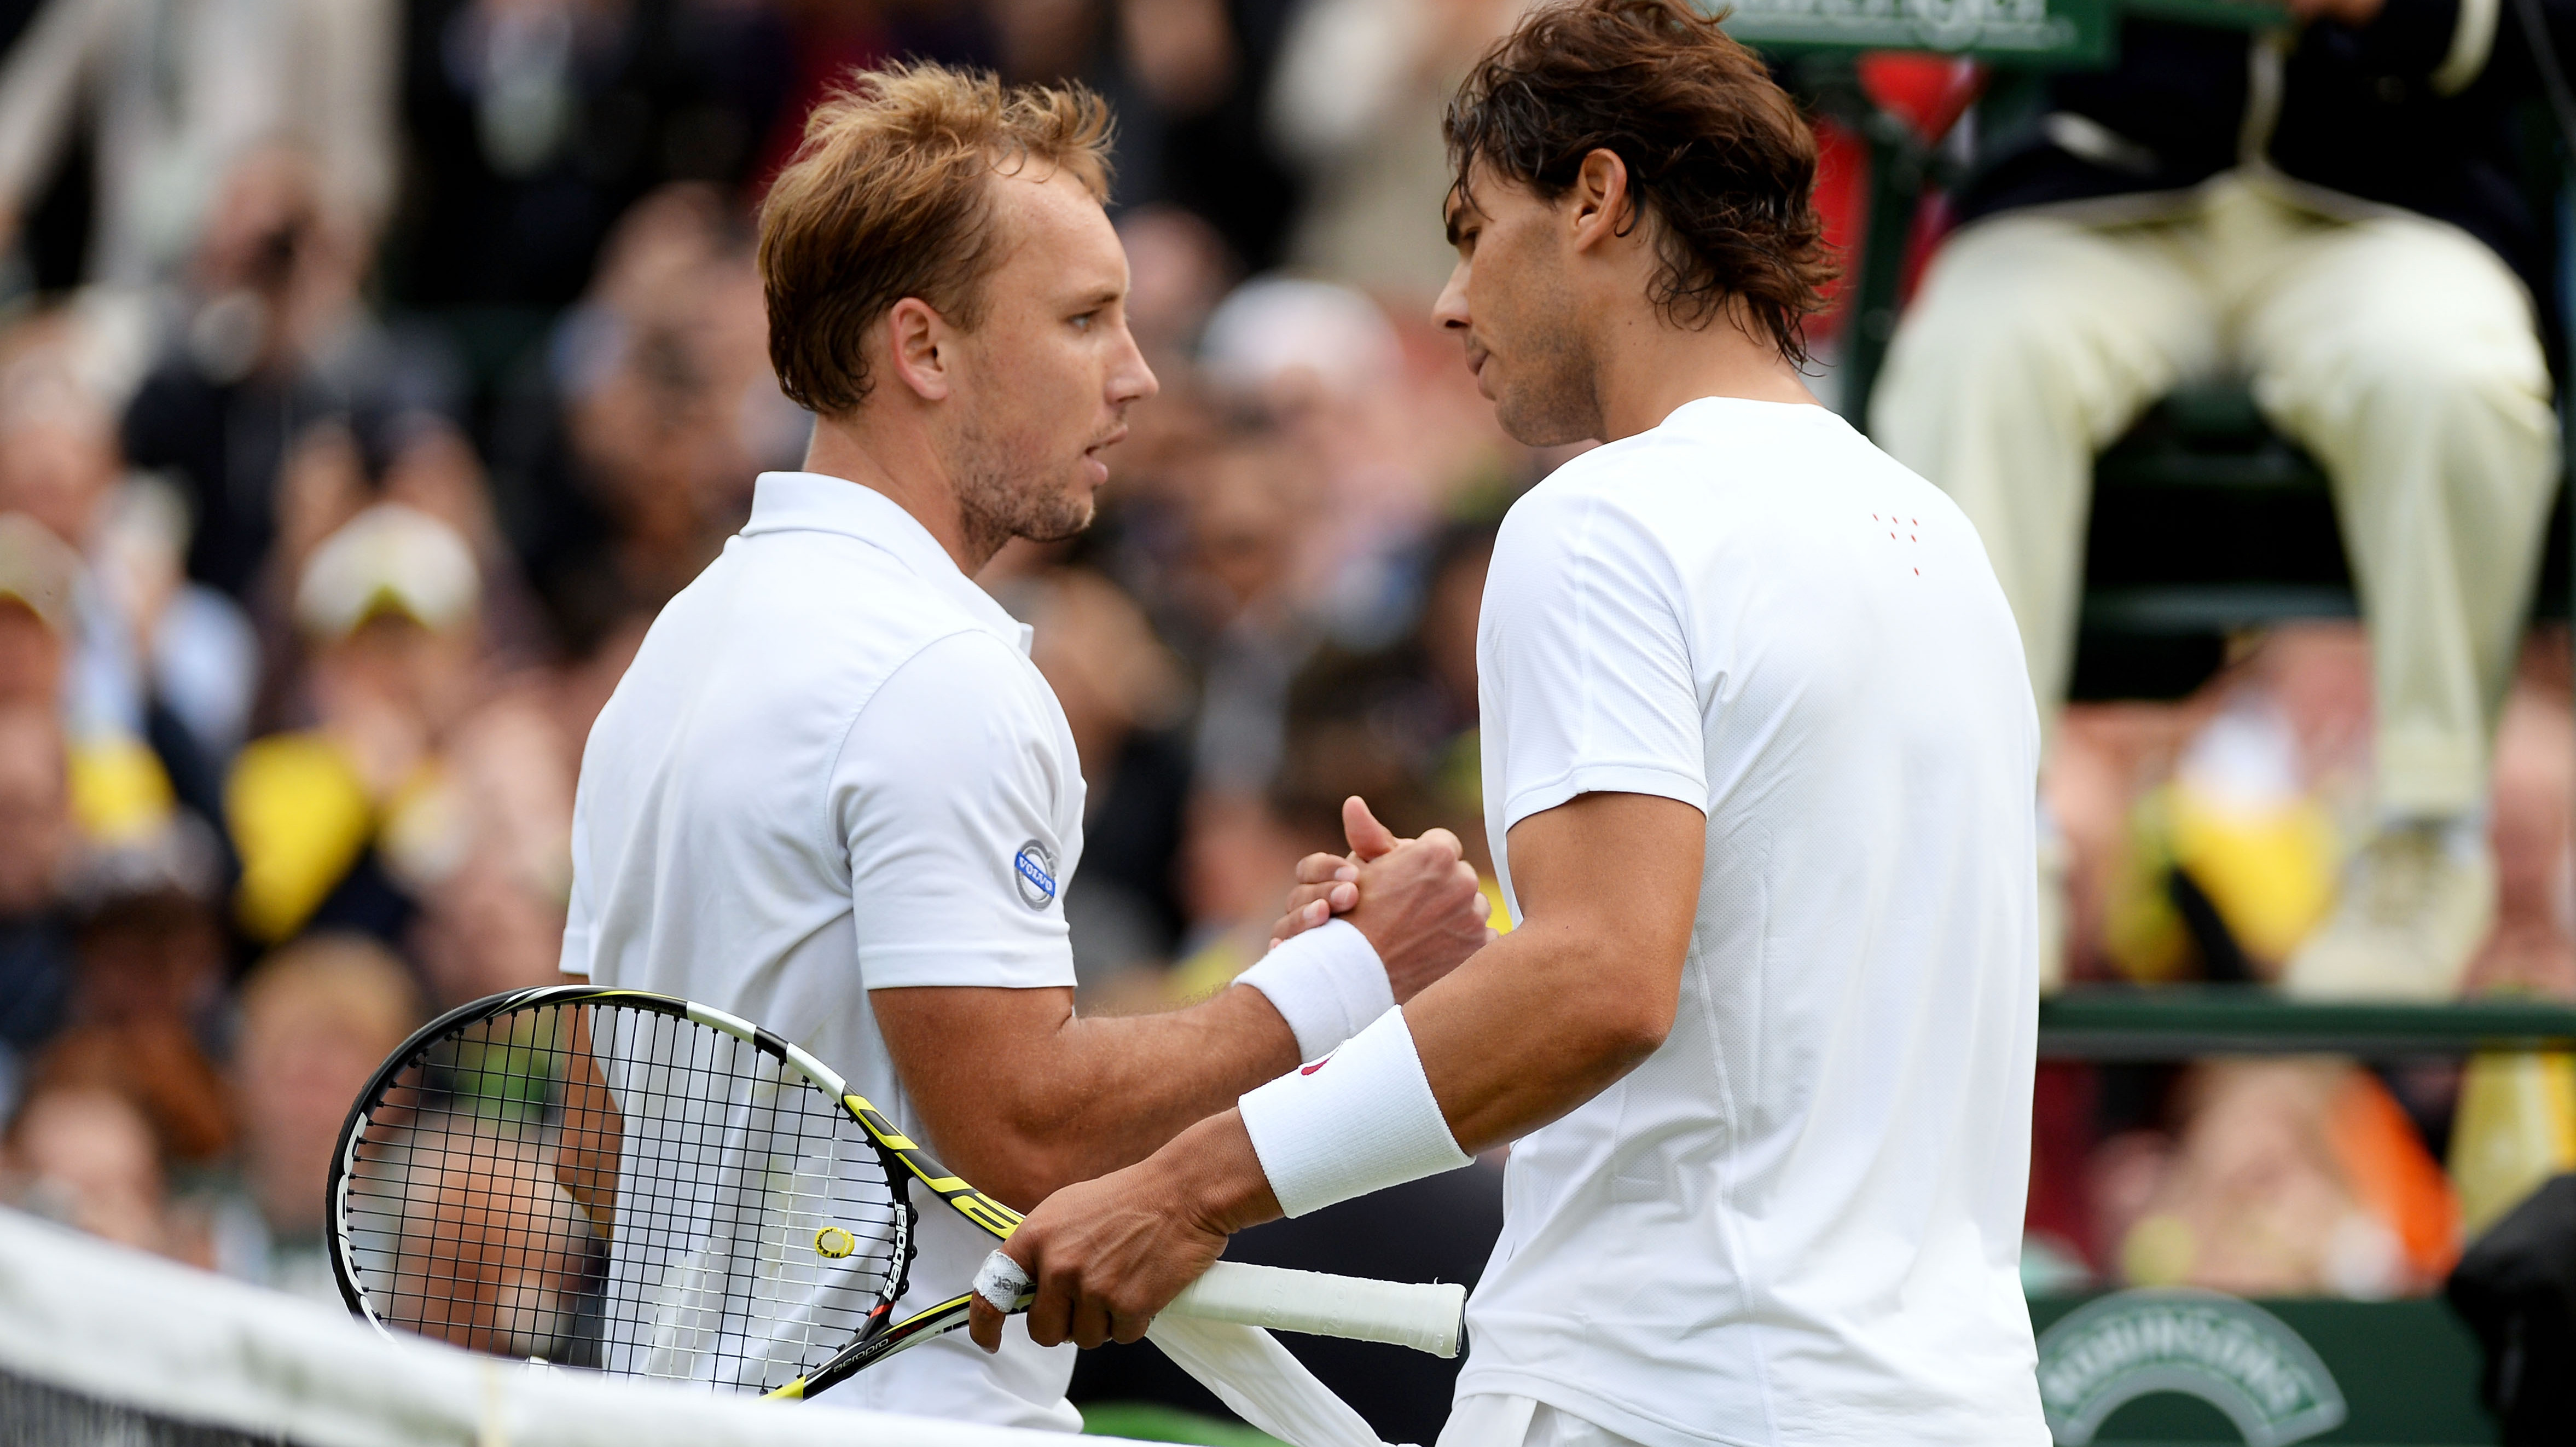 Rafael Nadal Loses In First Round Upset At Wimbledon The Two Way Npr